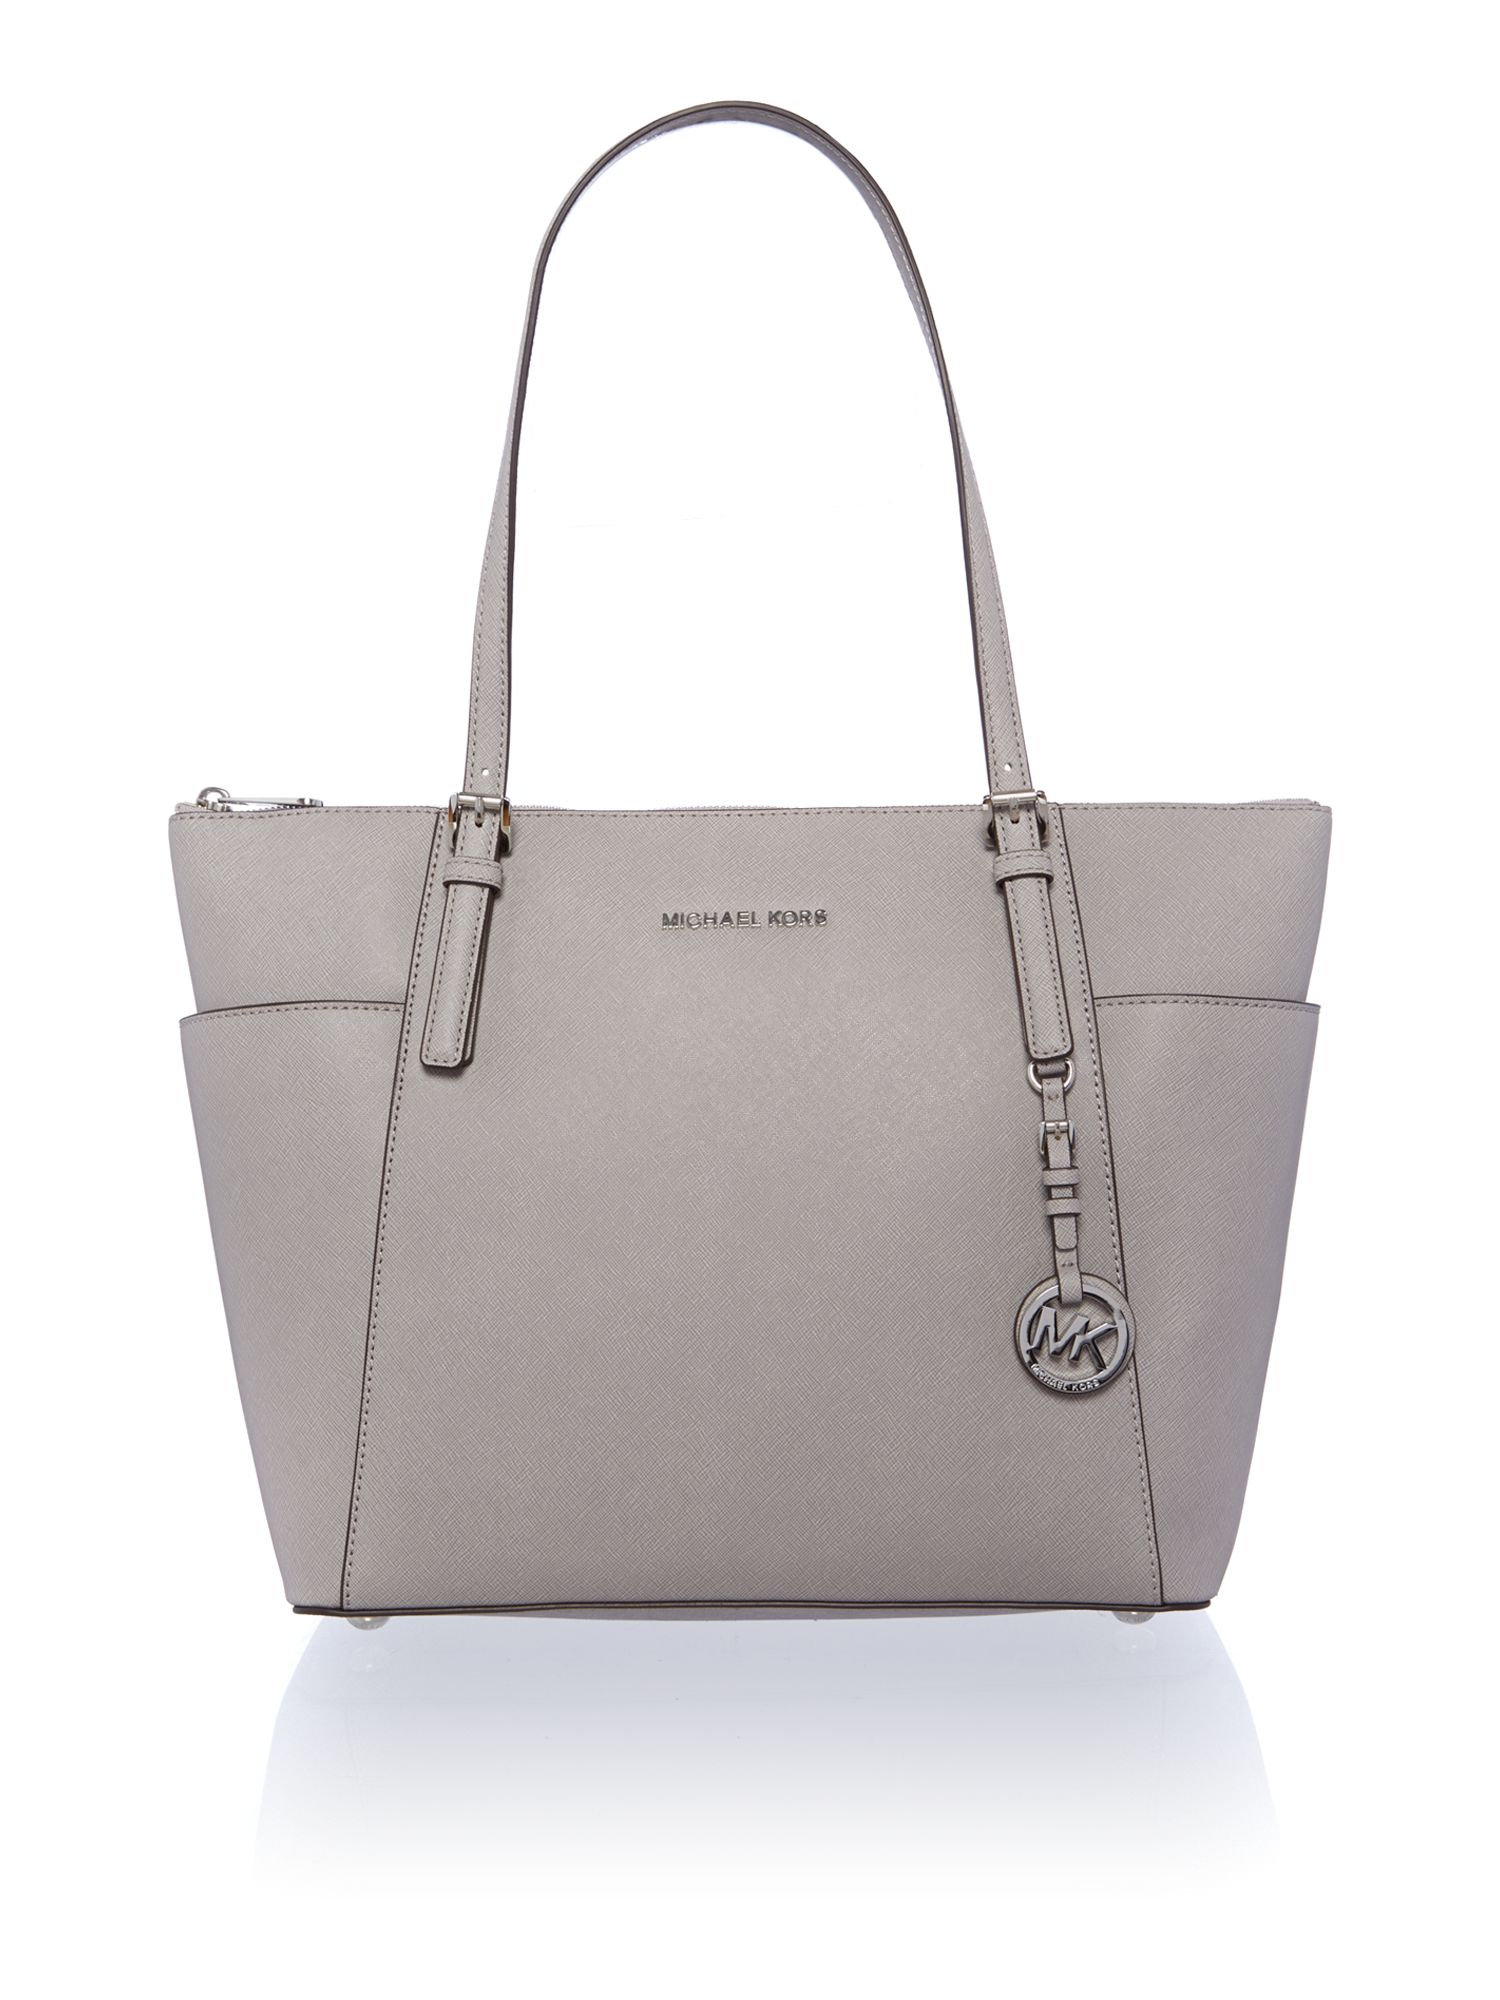 b47bbc8190ad5e Michael Kors Grey Tote Bag | Stanford Center for Opportunity Policy ...